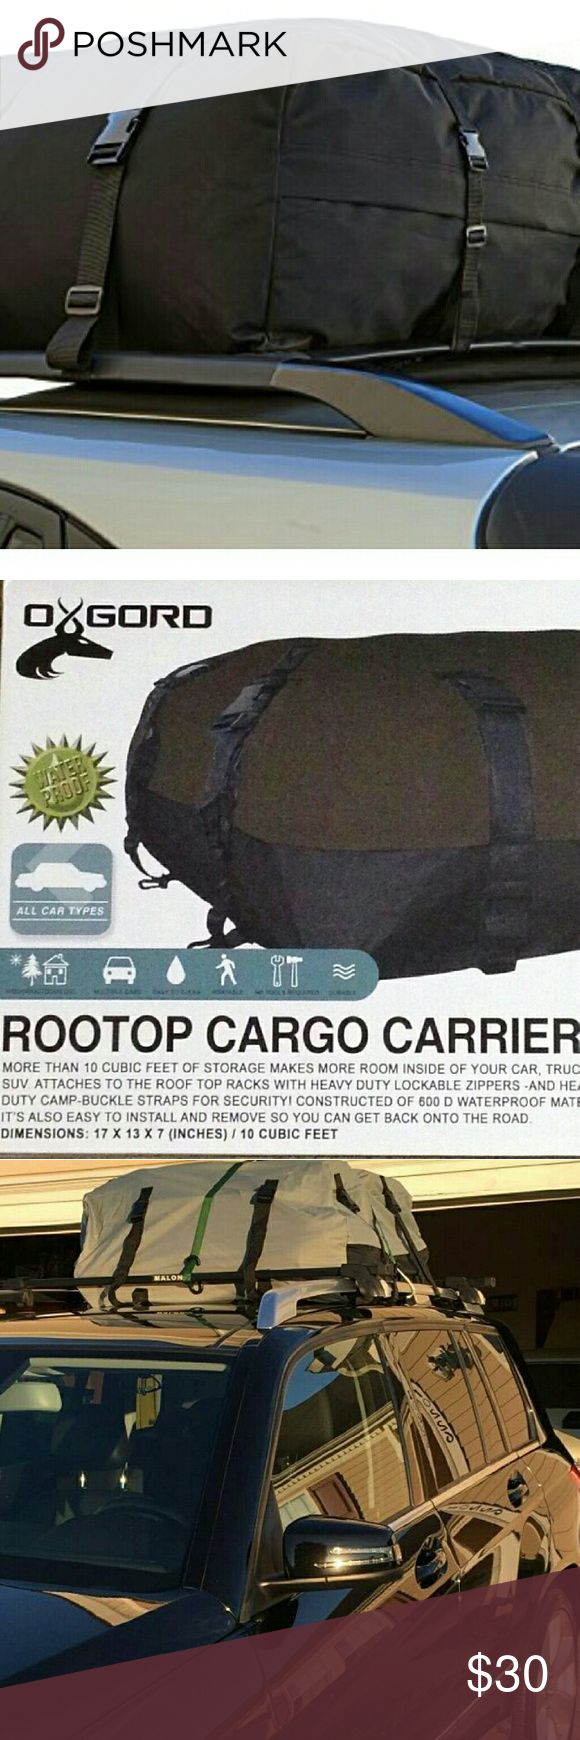 10 Best Waterproof Roof Top Cargo Bag Images On Pinterest